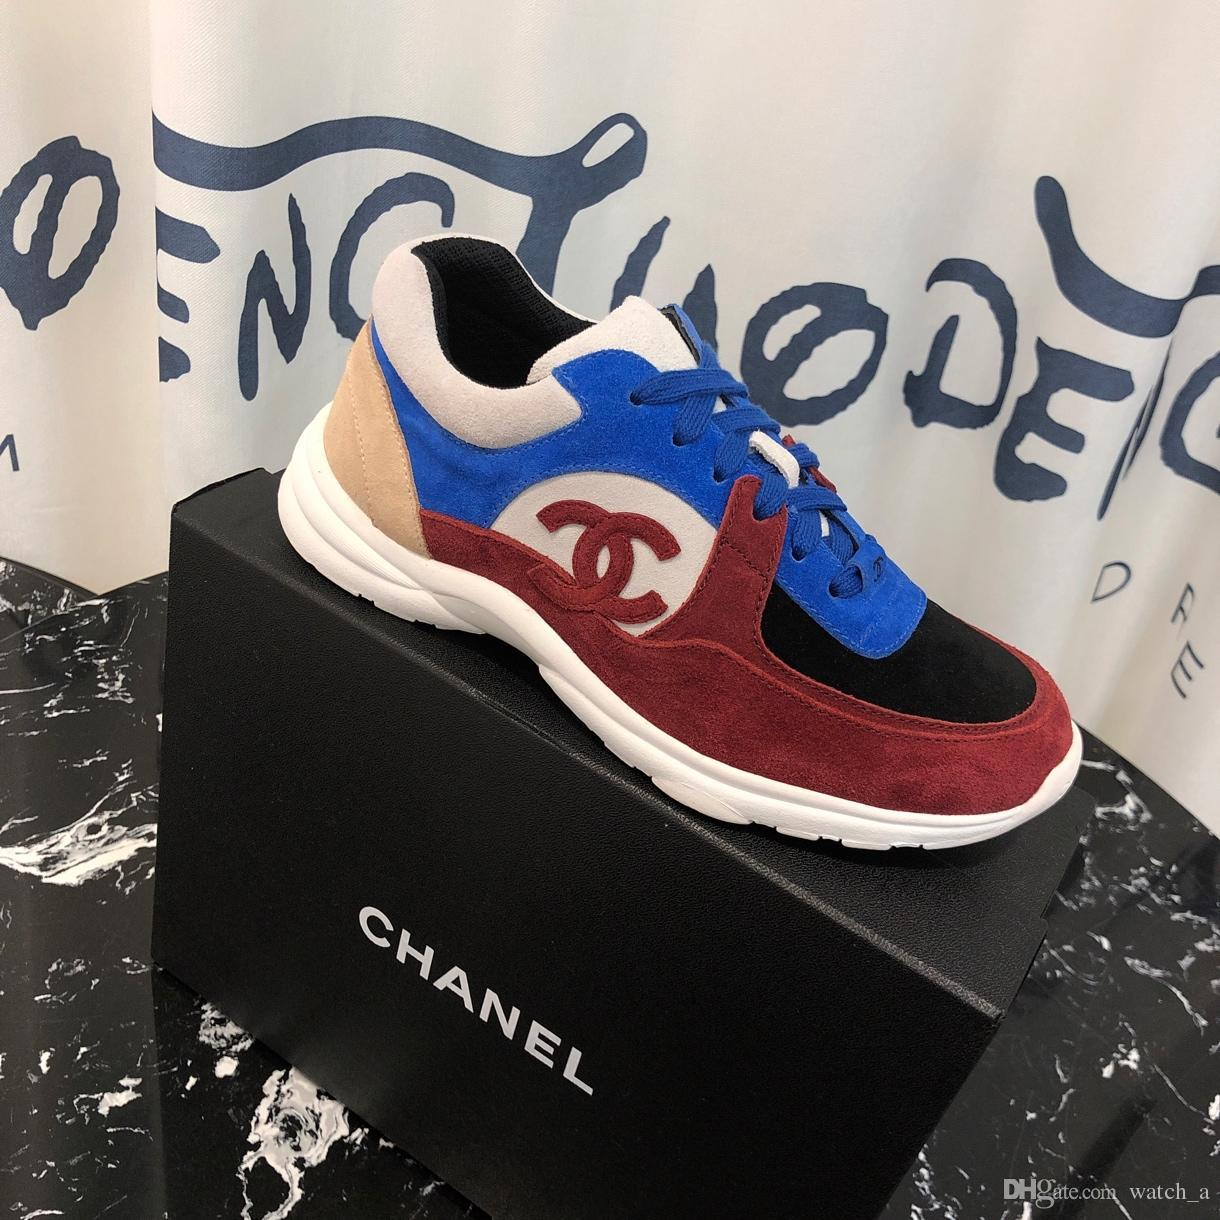 2019F new top luxury ladies casual shoes fashion wild sports shoes quality breathable ladies travel shoes original box invoice packaging